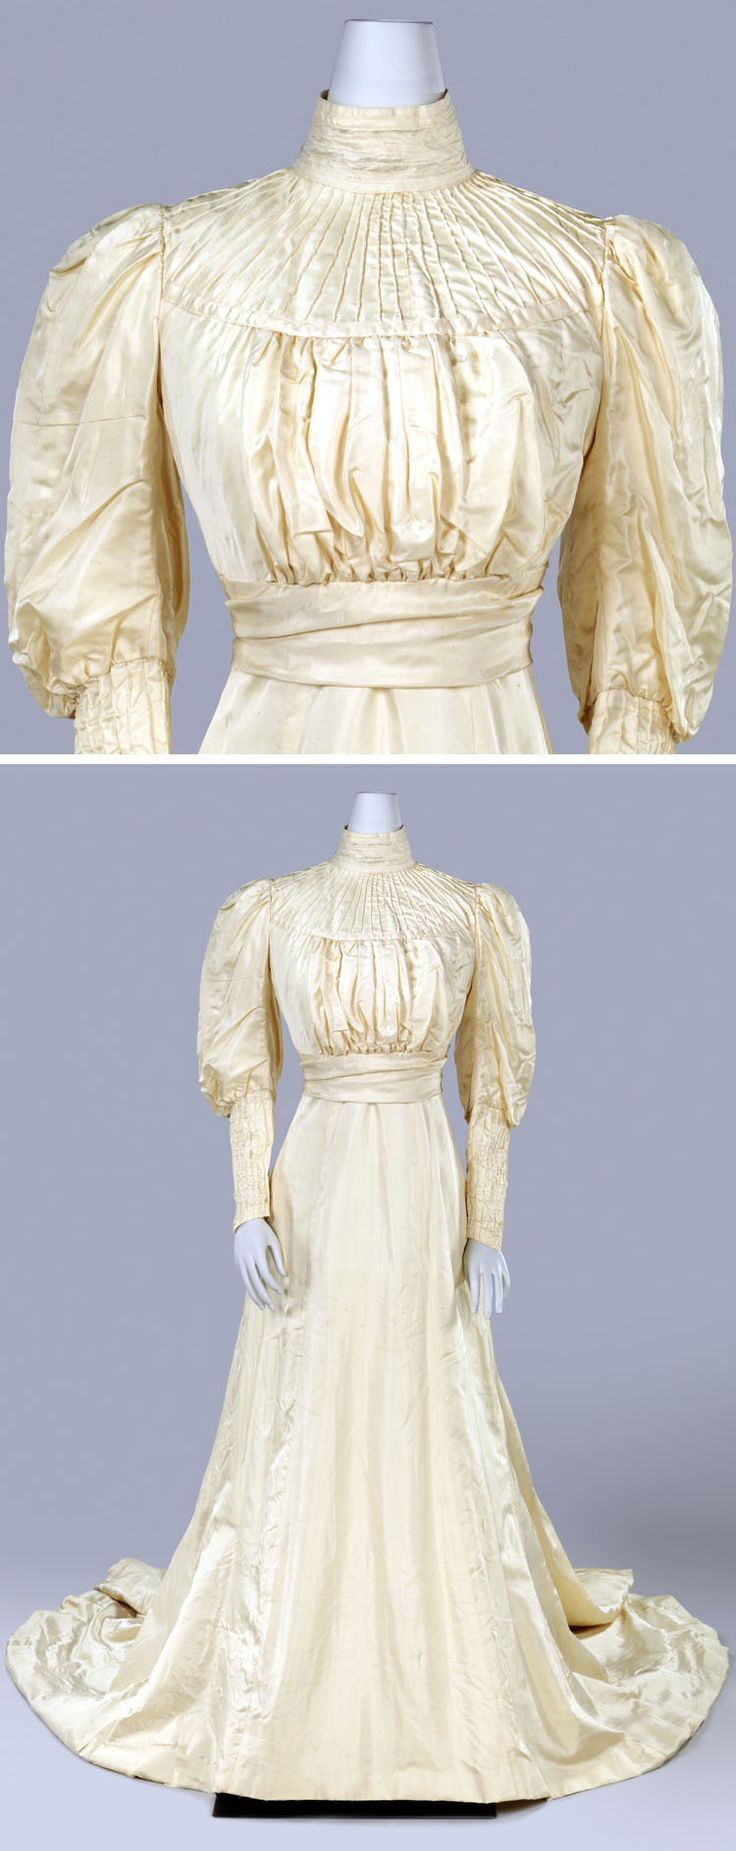 Wedding dress, M.A. van Asch, Amsterdam, 1908. Cream silk ottoman, two pieces. Dress is incomplete. It was originally worn with wide, ruffled lace flounce covering upper bodice from shoulder to shoulder. Lace-trimmed linen tank under bodice. Skirt lined with linen, with lace-trimmed ruffle at hem. Back hook & eye closure. Rijksmuseum